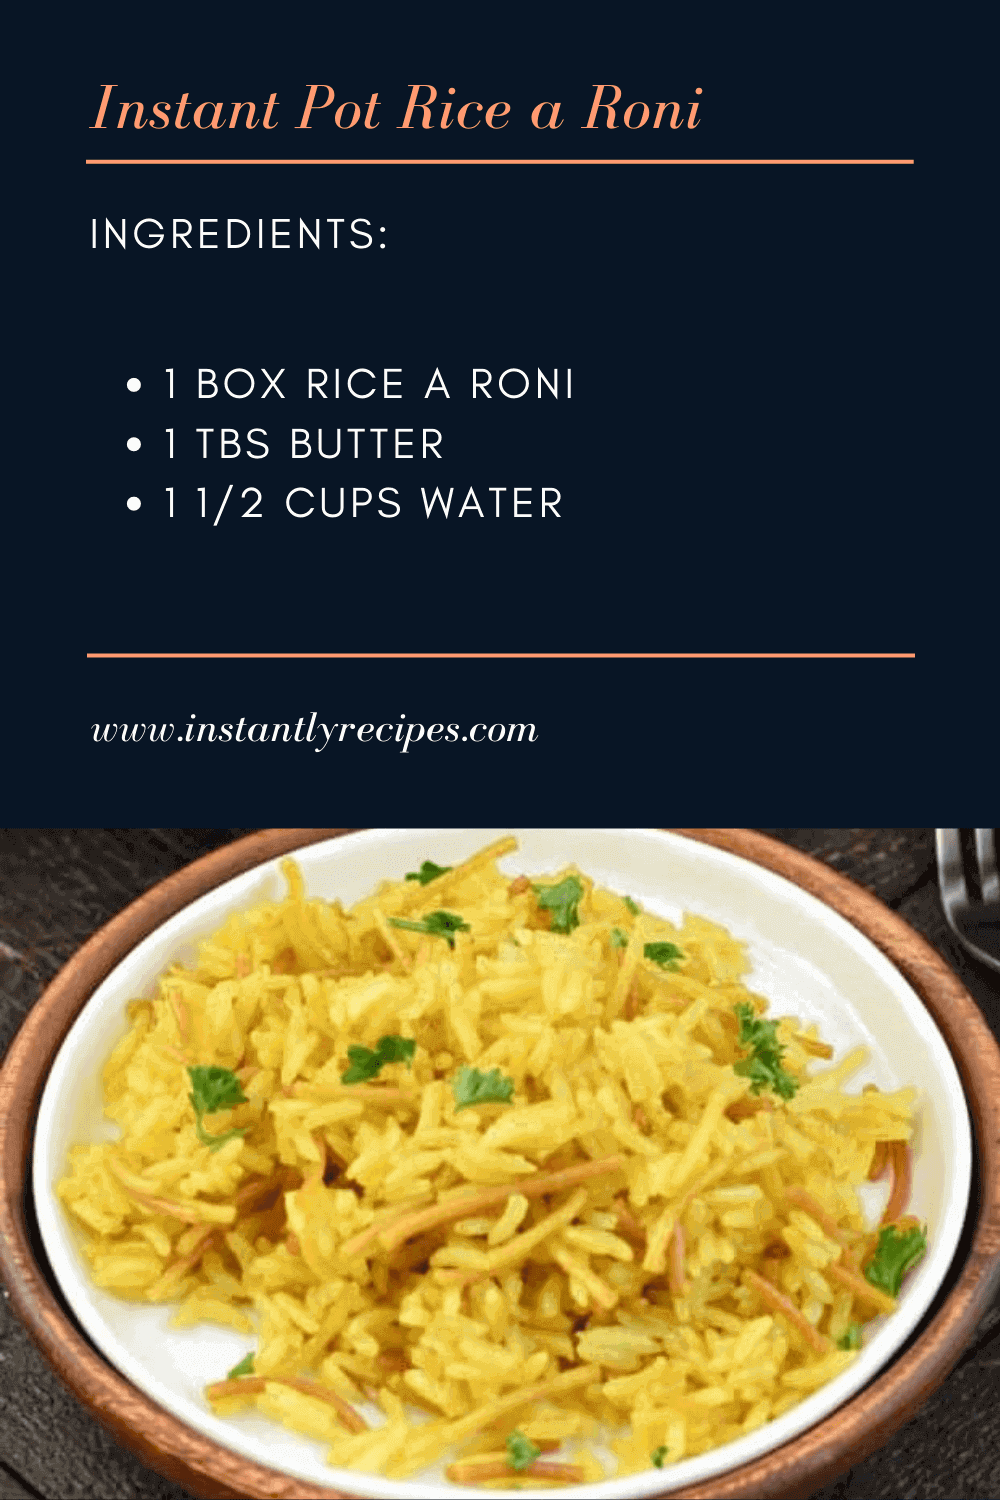 all ingredients you need to make this instant pot rice a roni recipe